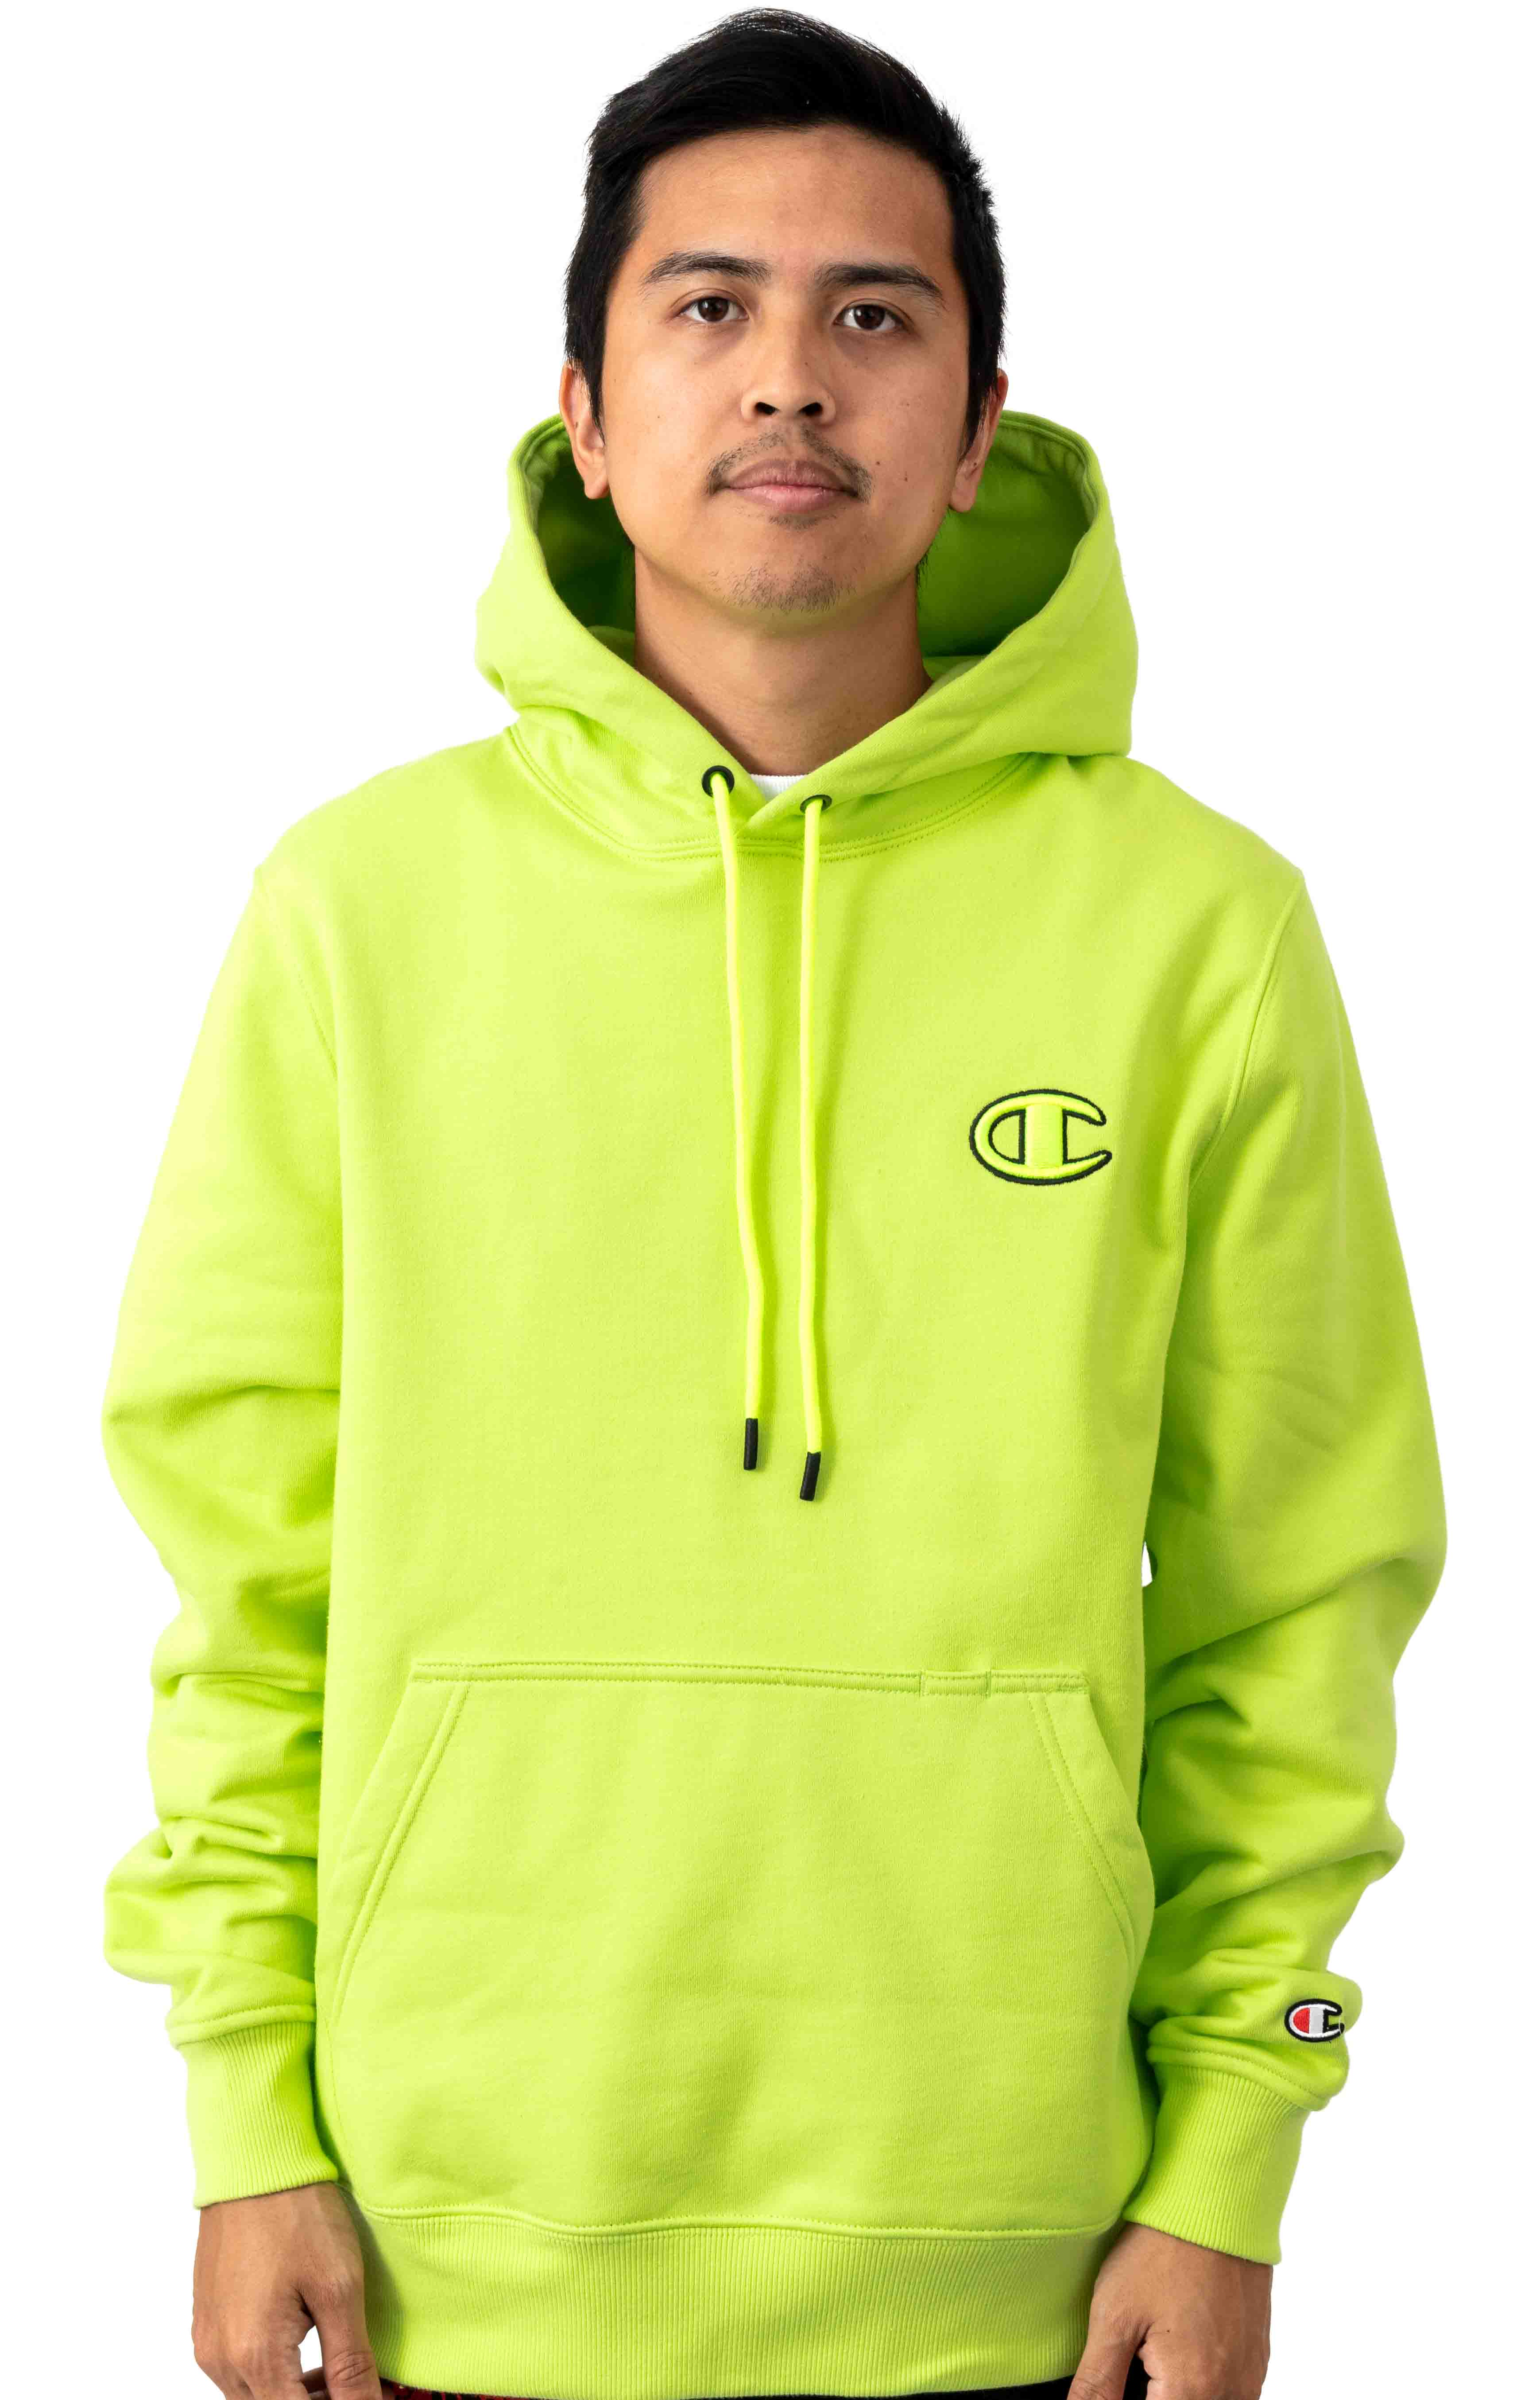 Super Fleece 2.0 Pullover Hoodie - Neon Light